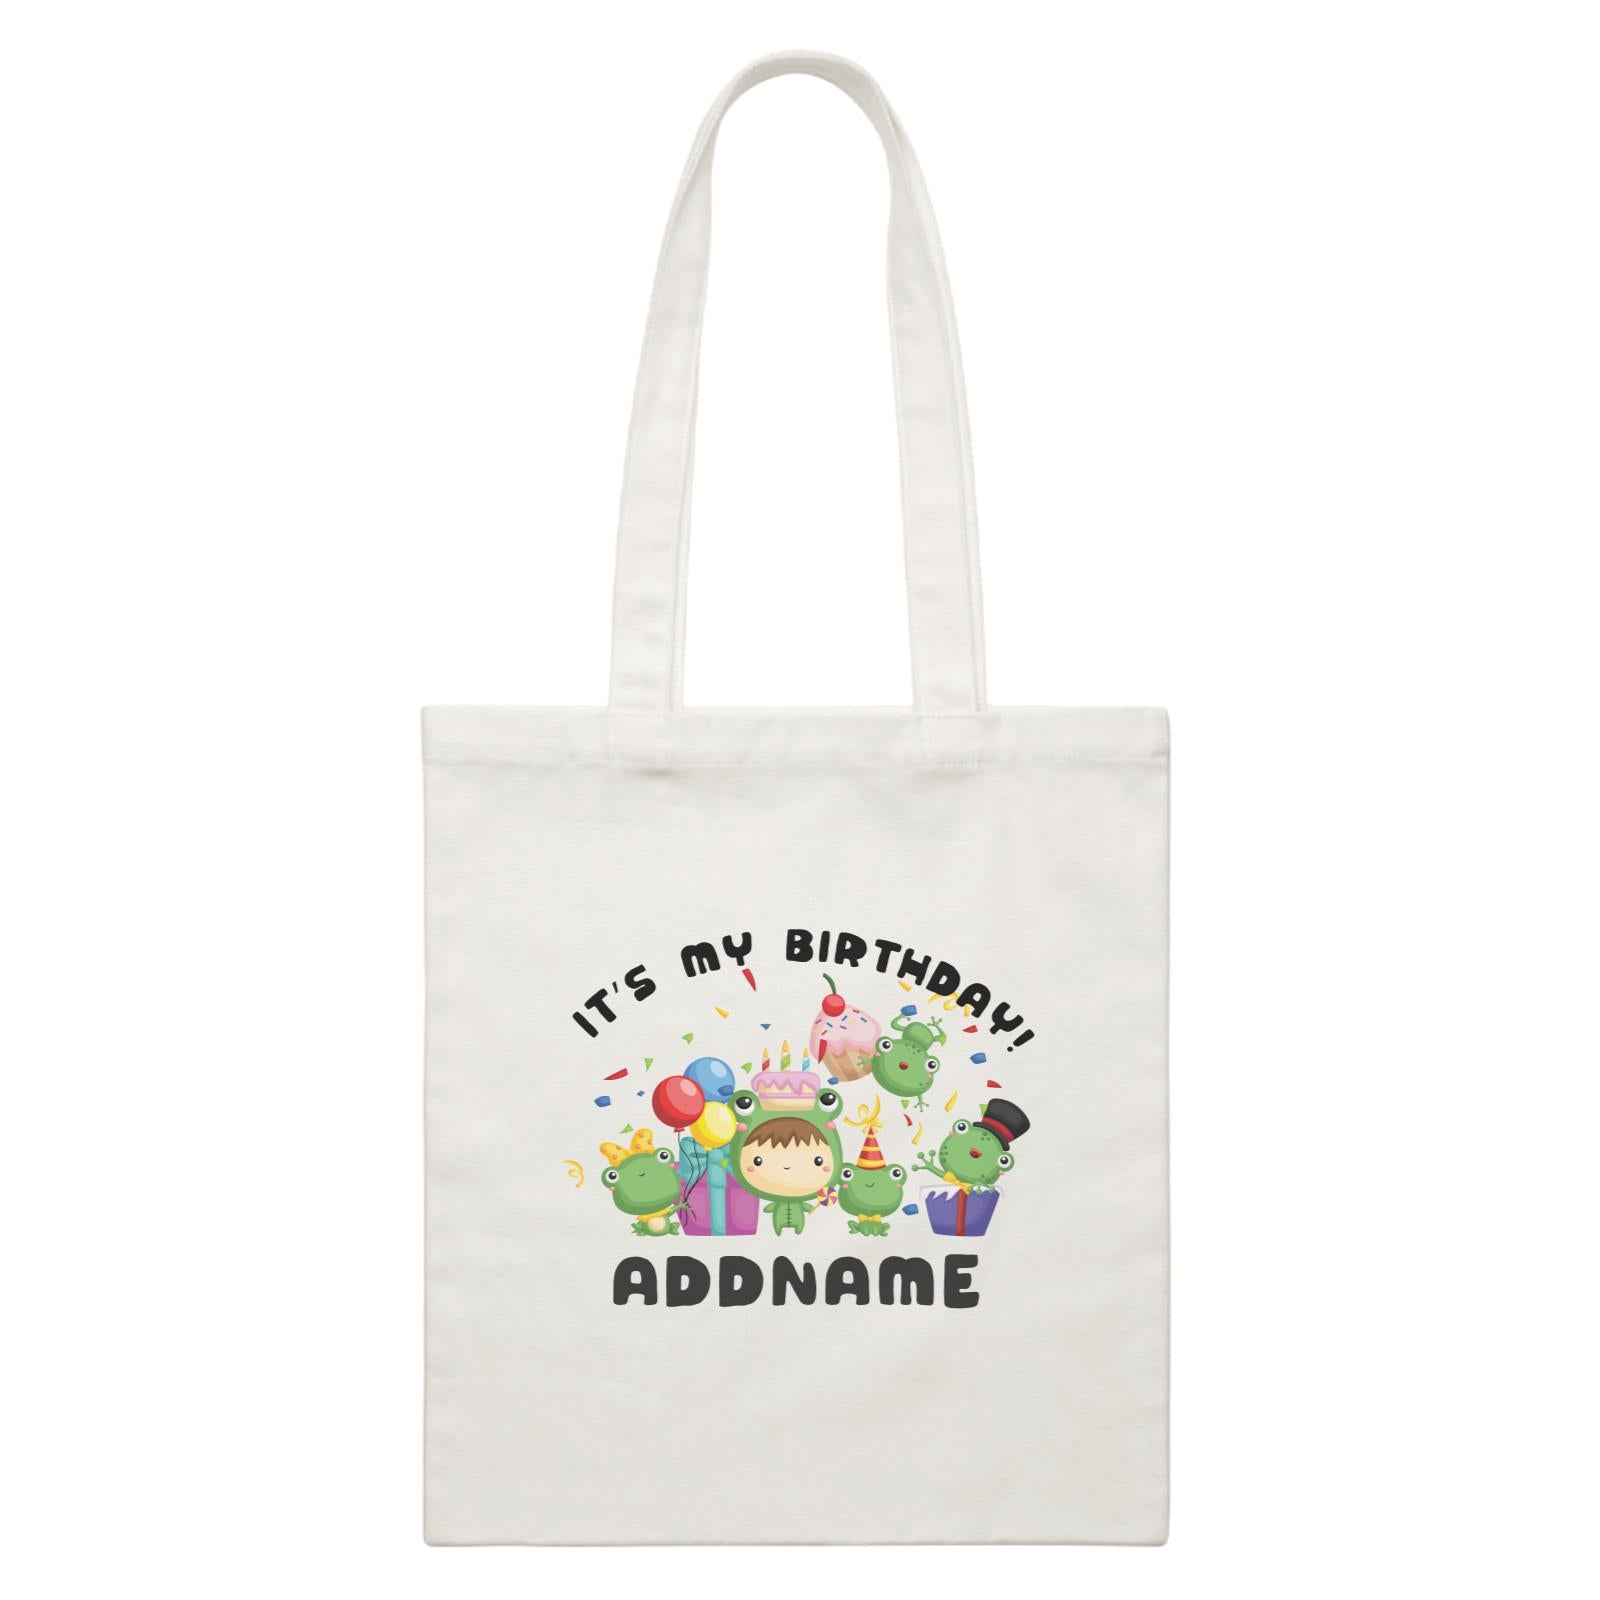 Birthday Frog Happy Frog Group It's My Birthday Addname White Canvas Bag